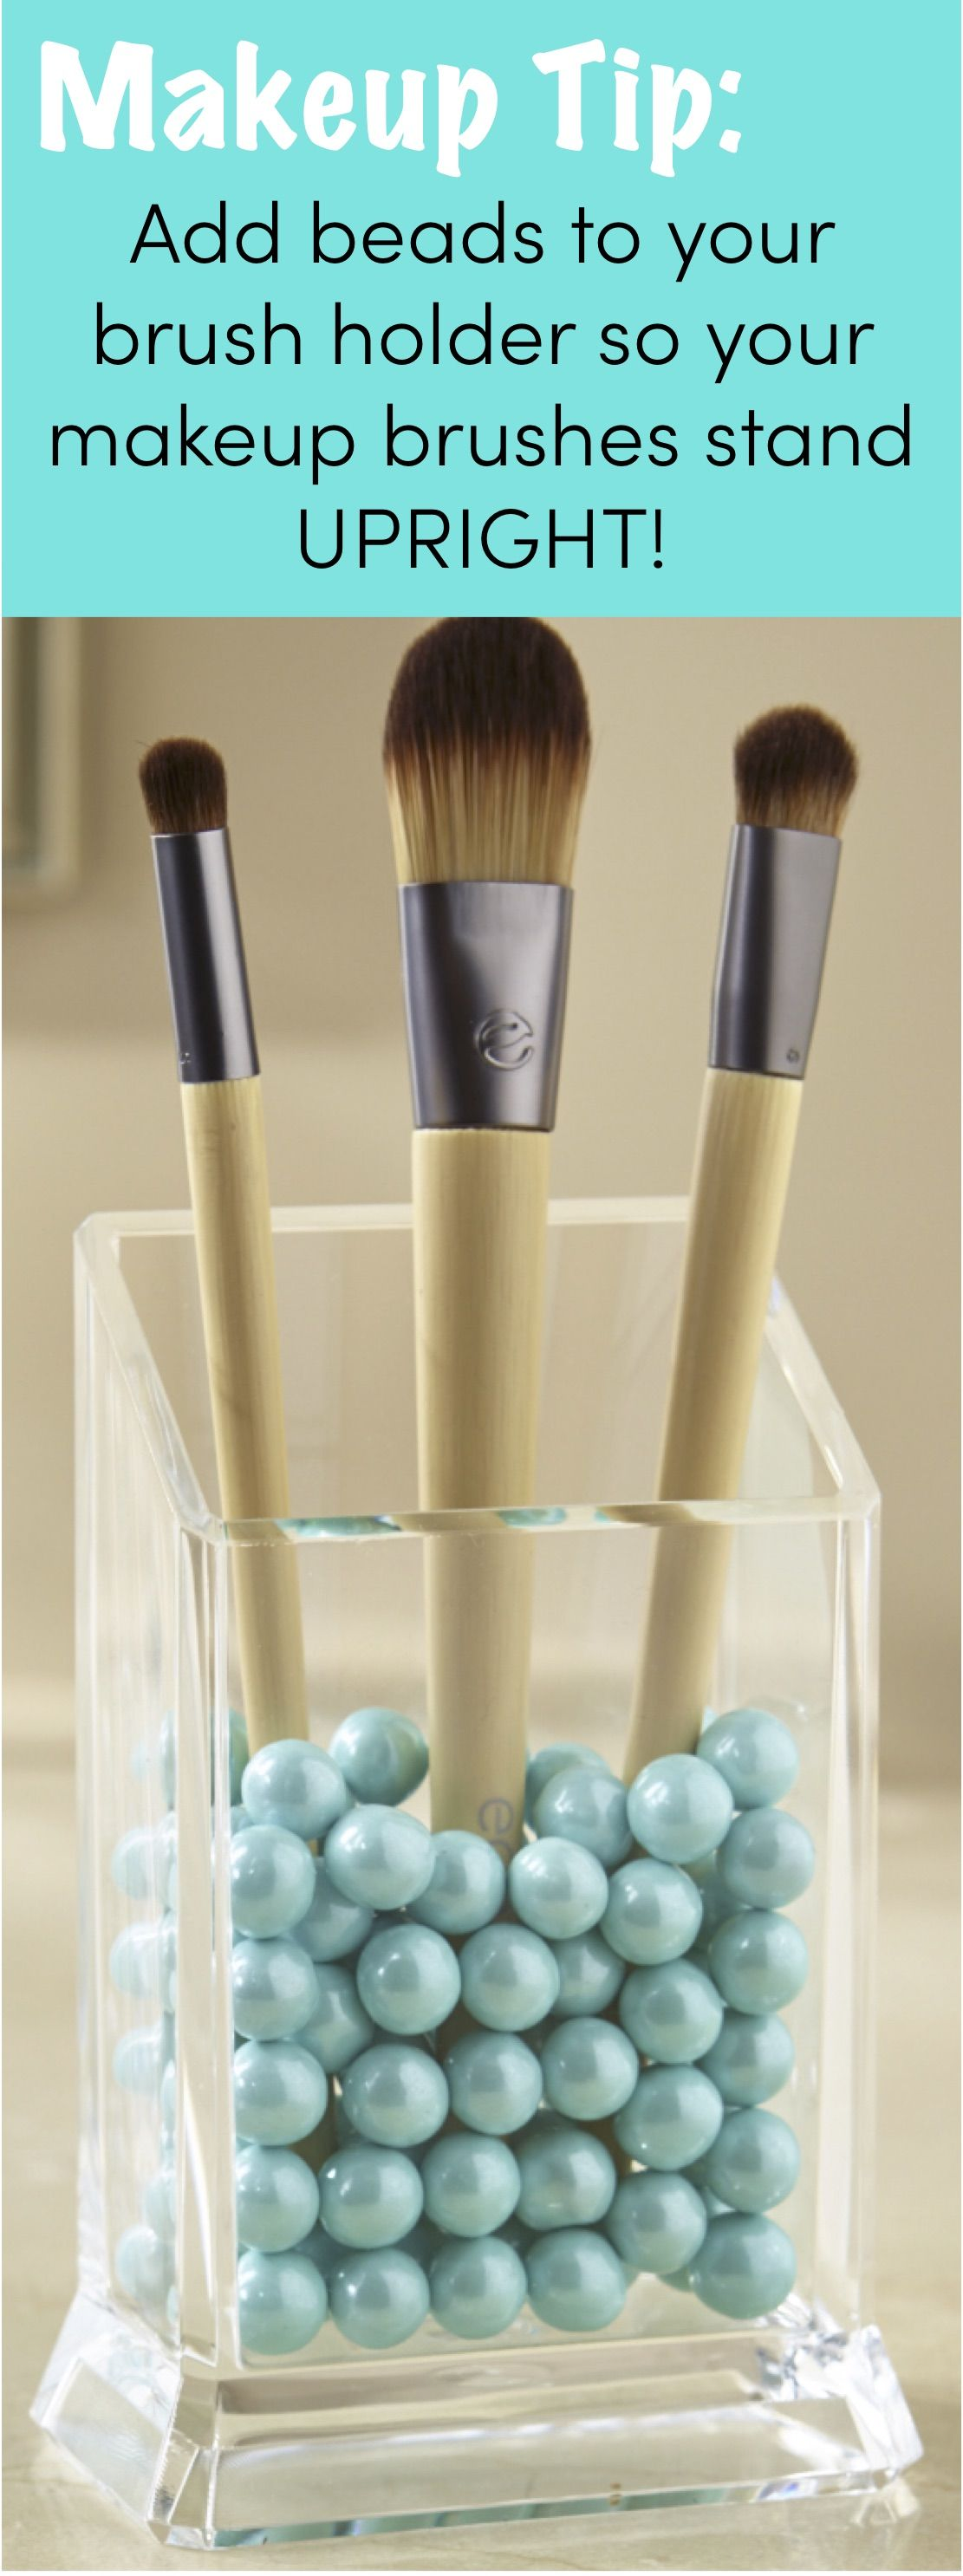 Makeup Tip. Add beads to your brush holder so your makeup